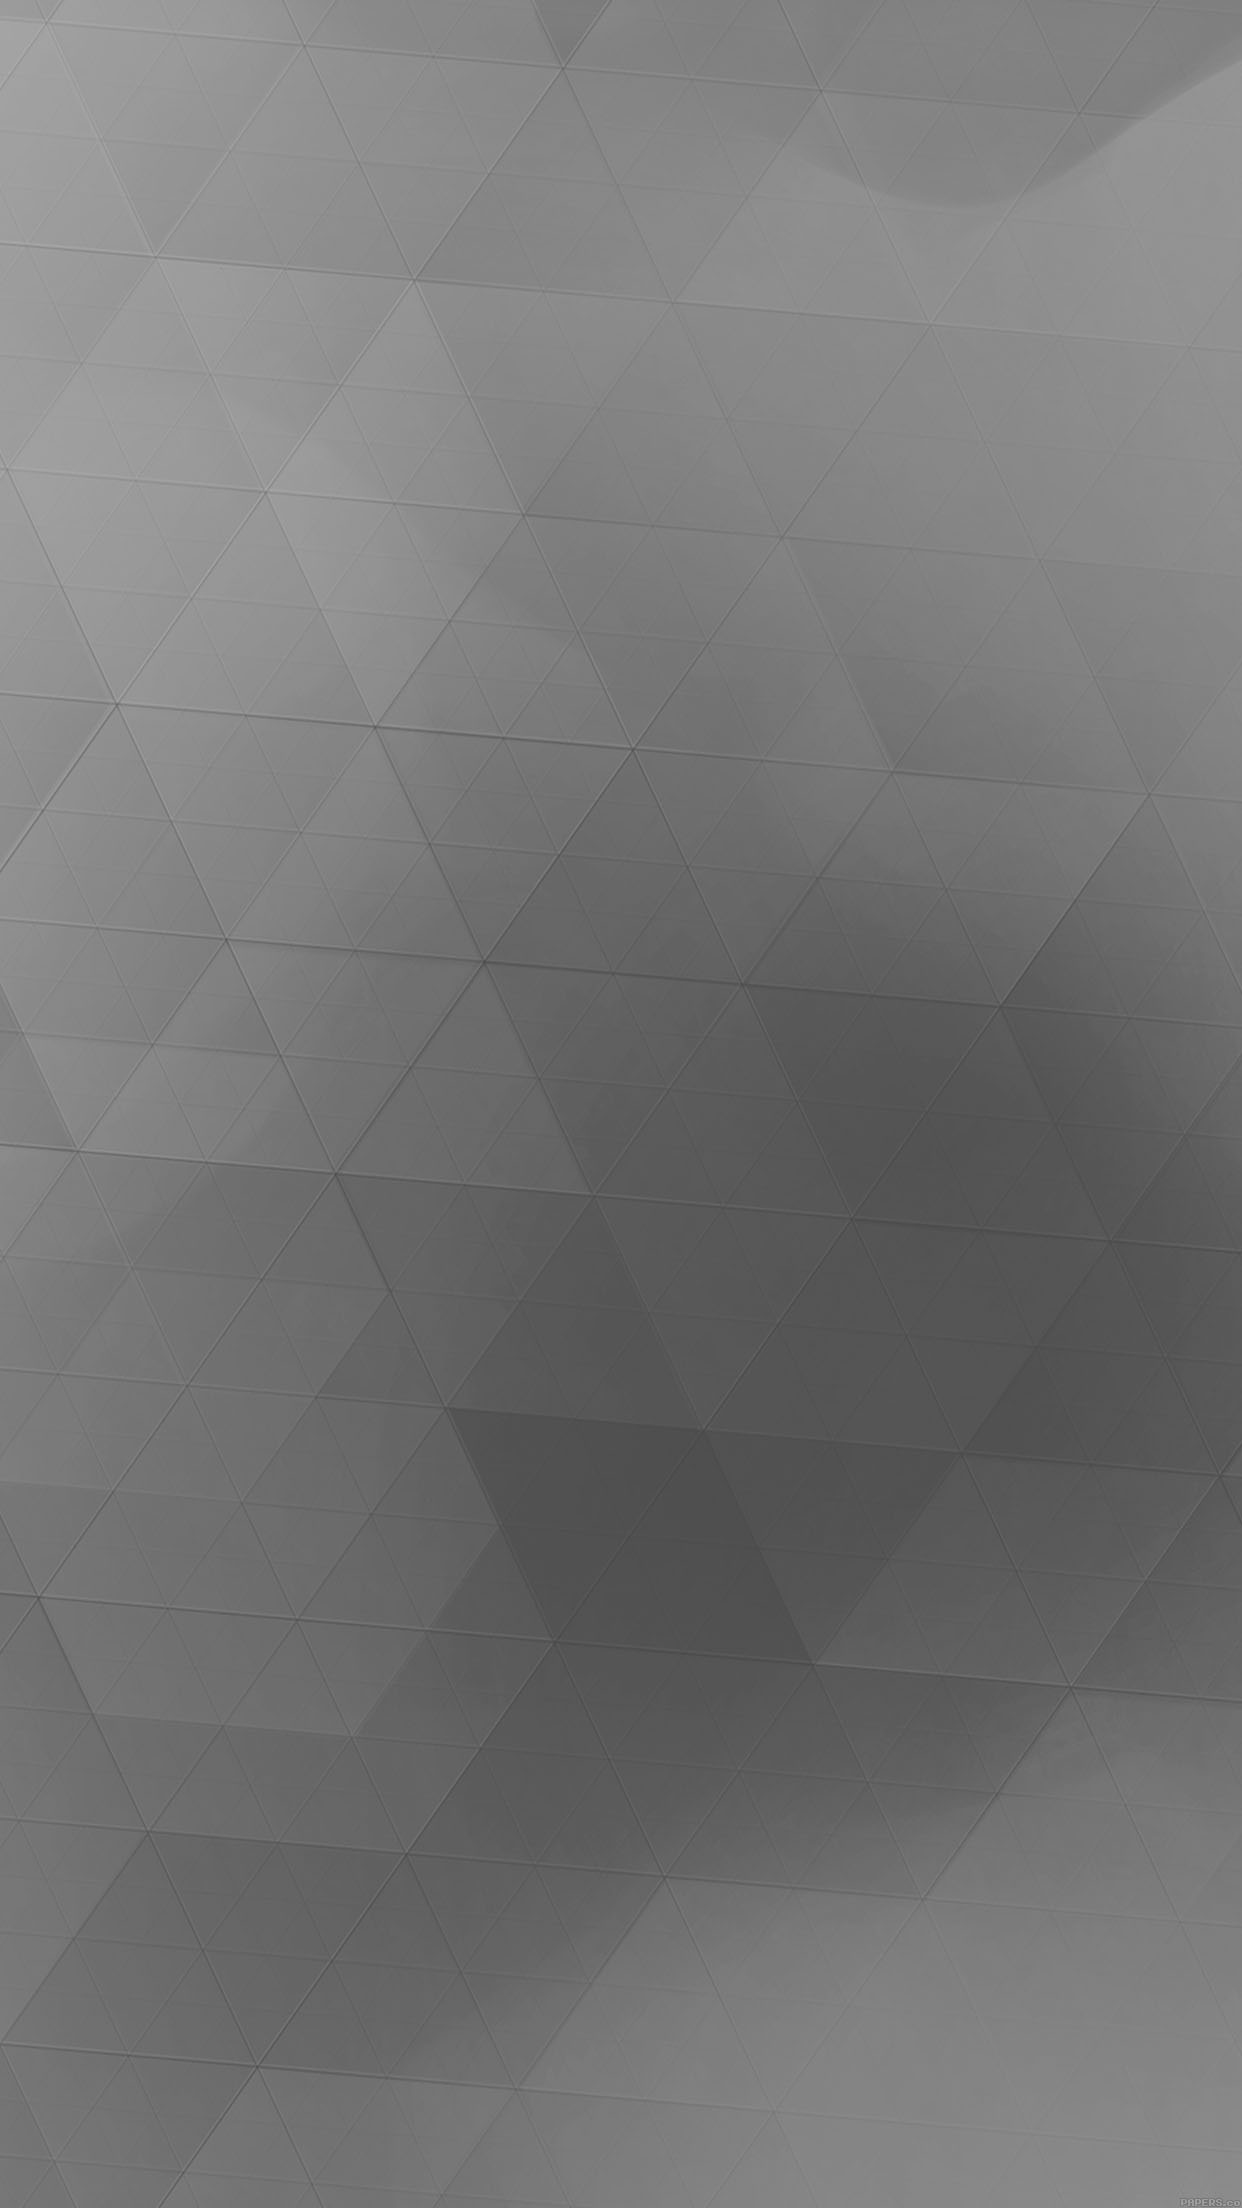 Wallpaper Android Gray Wall Pattern Android wallpaper